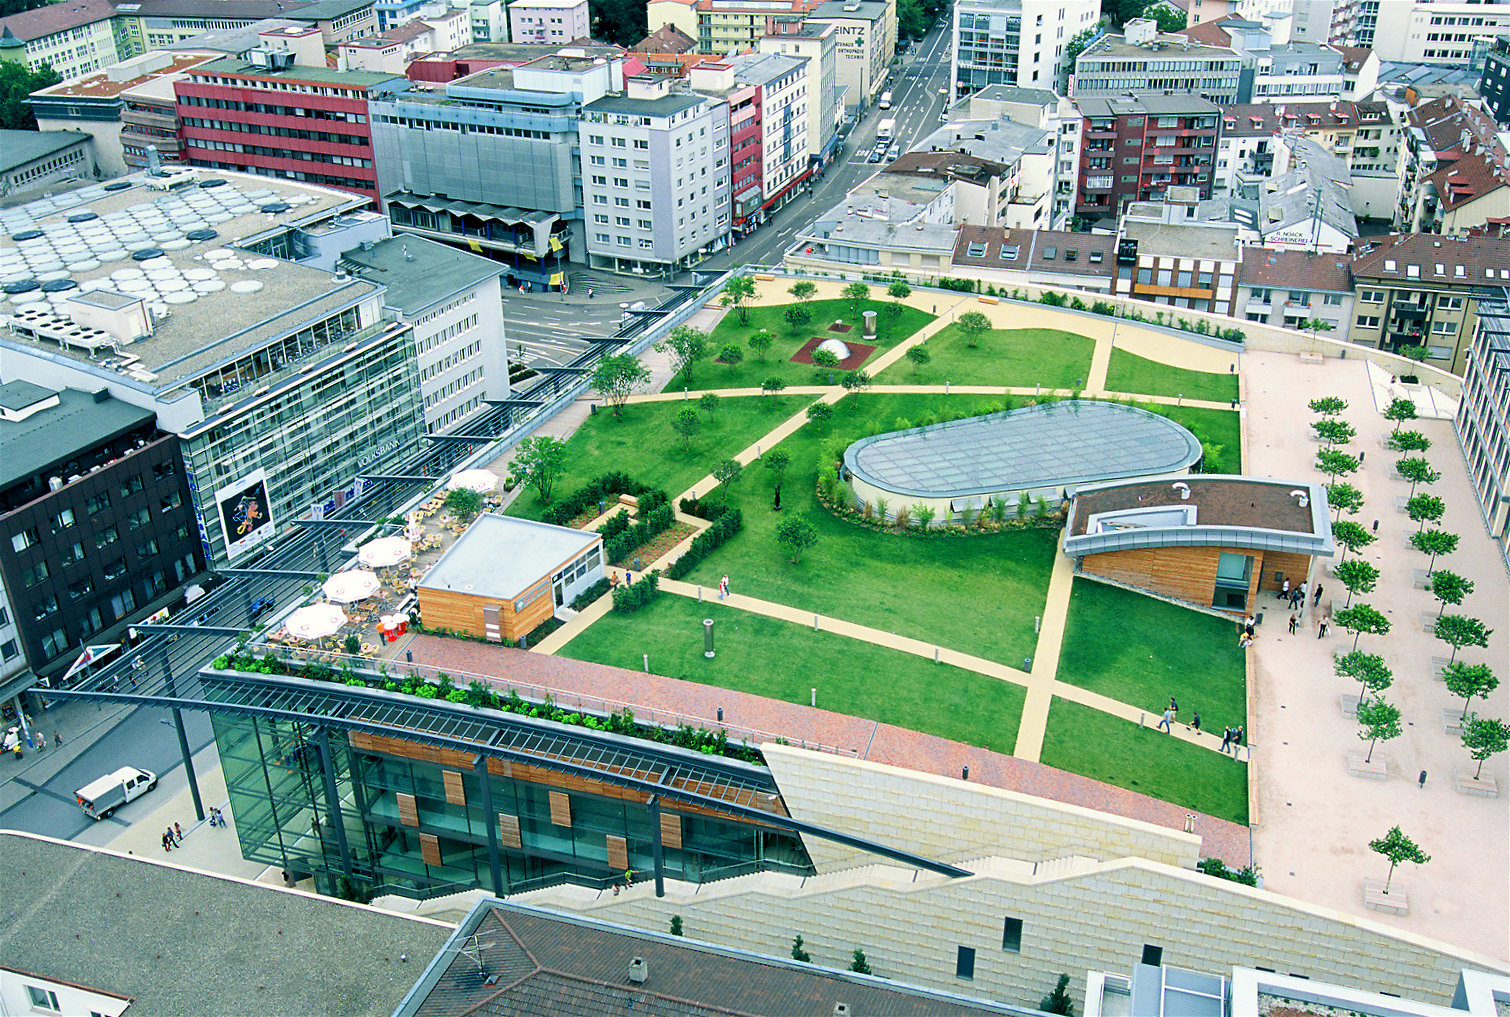 Asia Haus Hamburg Germany S Green Roofs Offer Lesson On Climate Change Adaptation